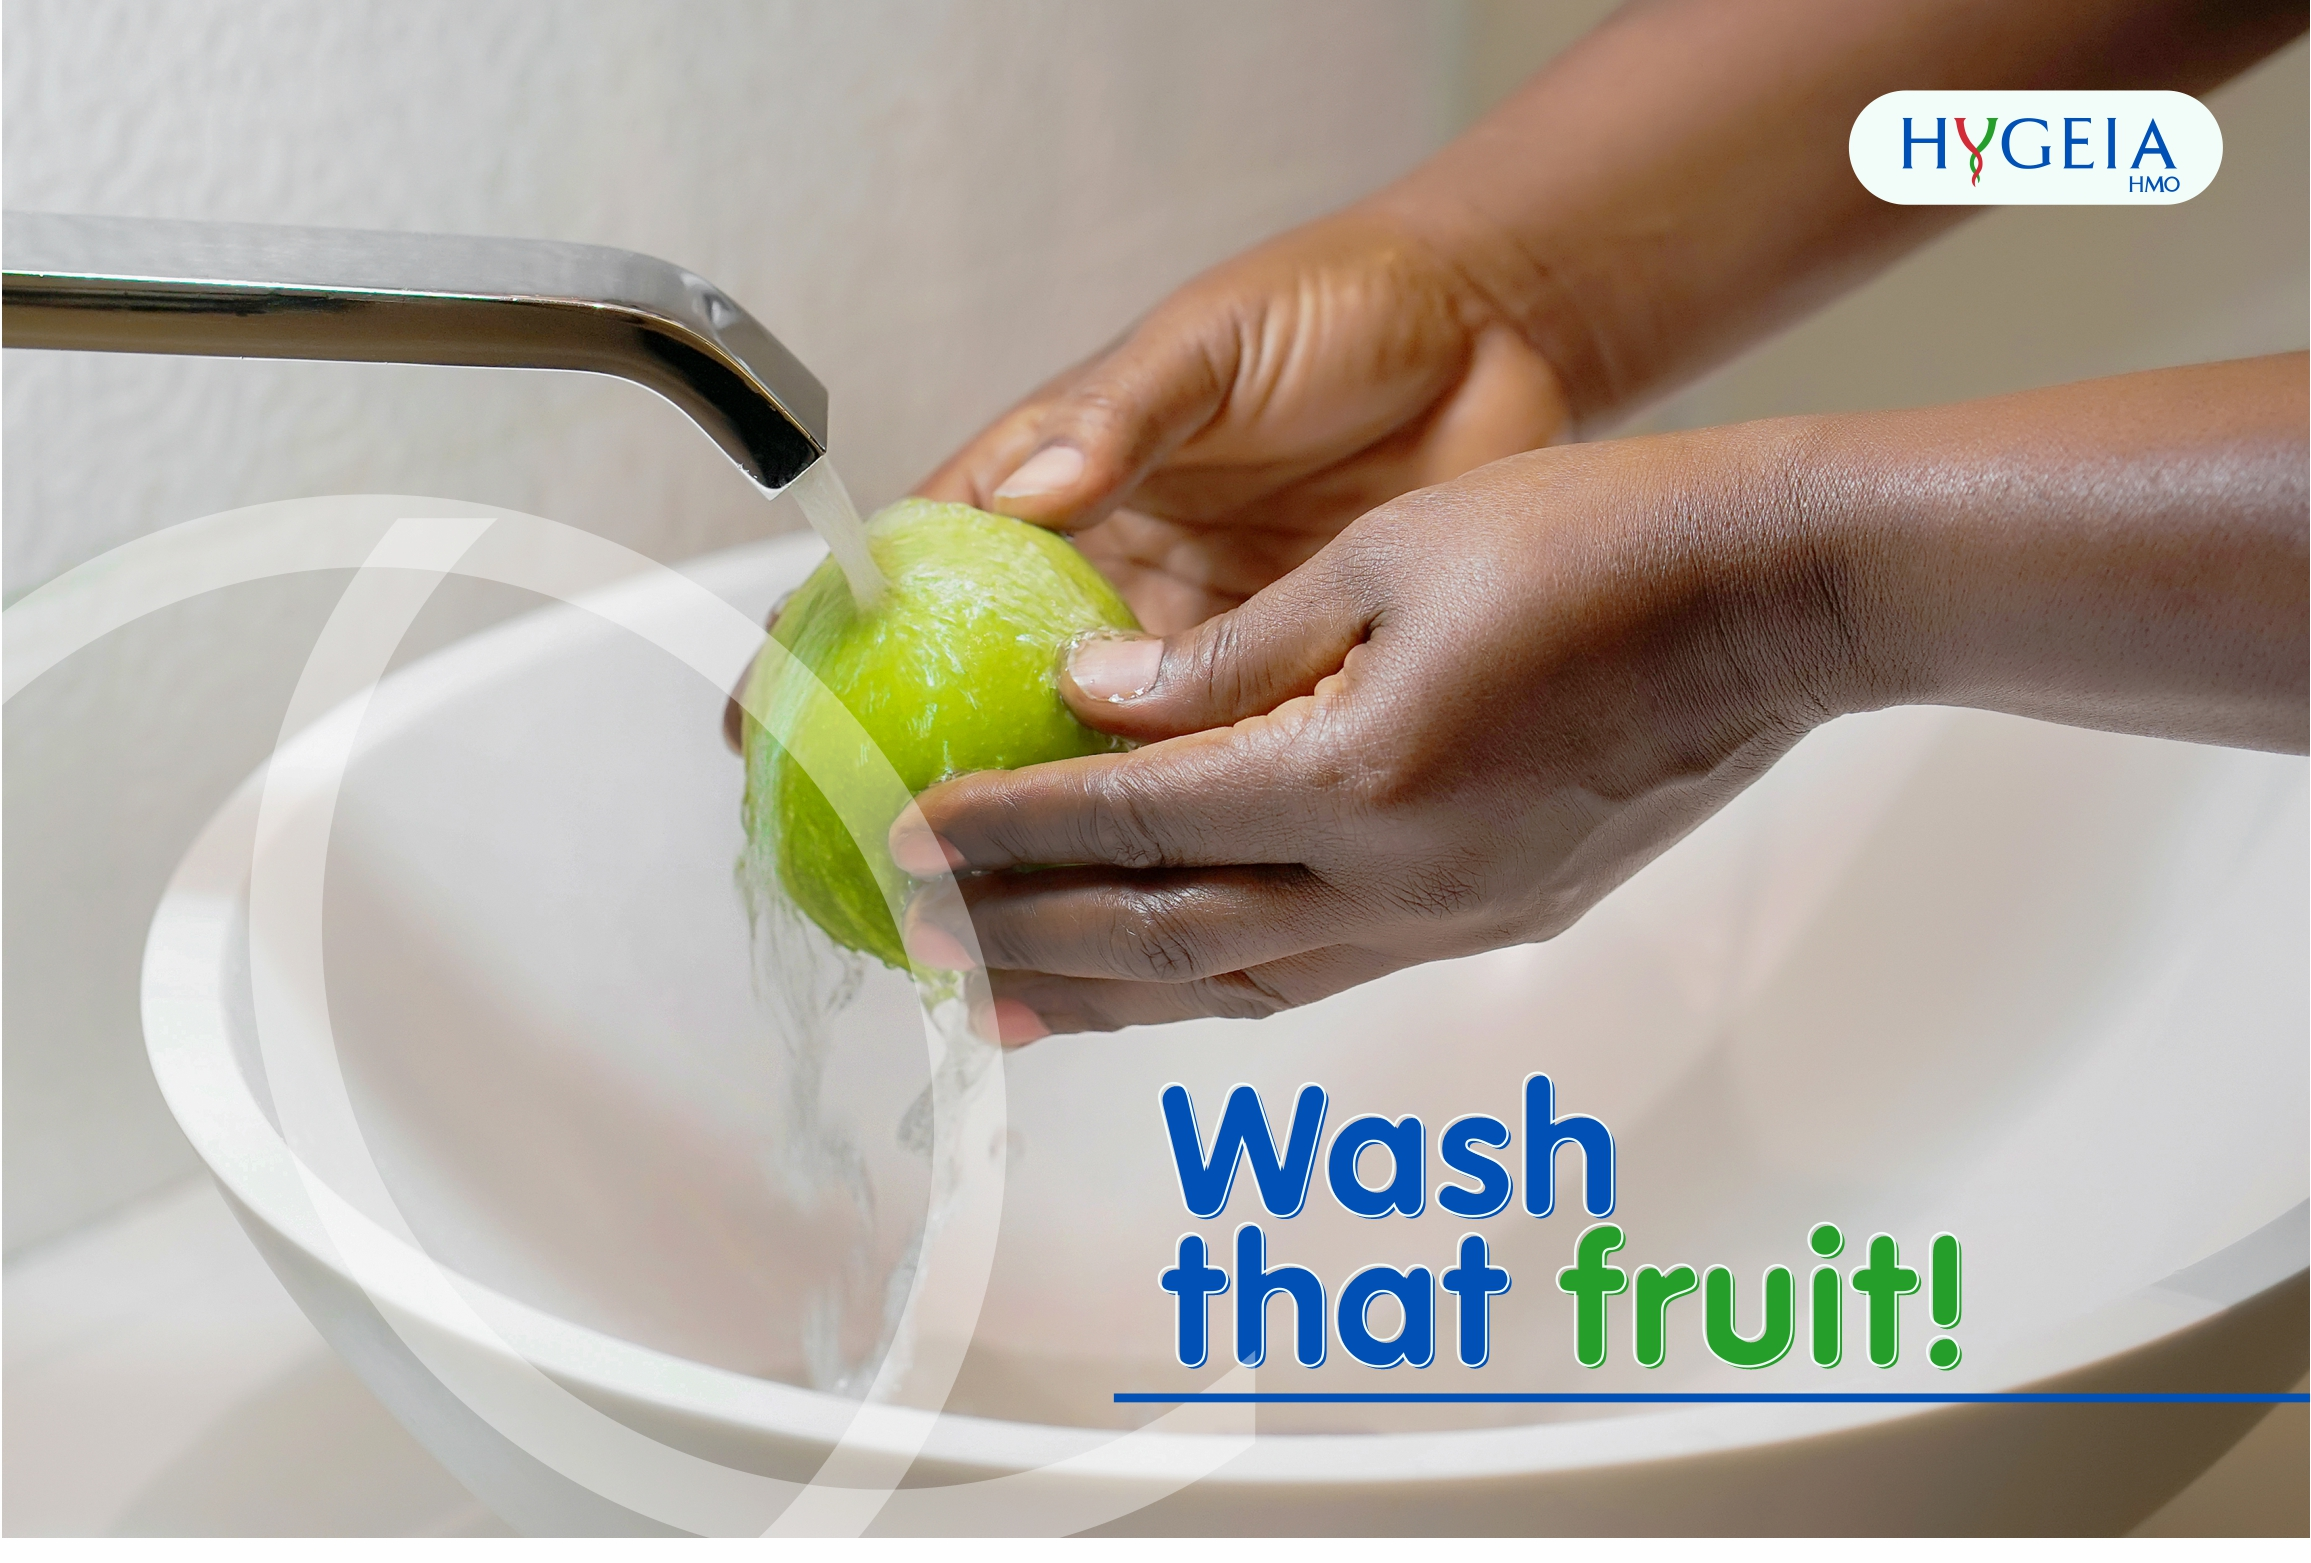 Wash your fruits